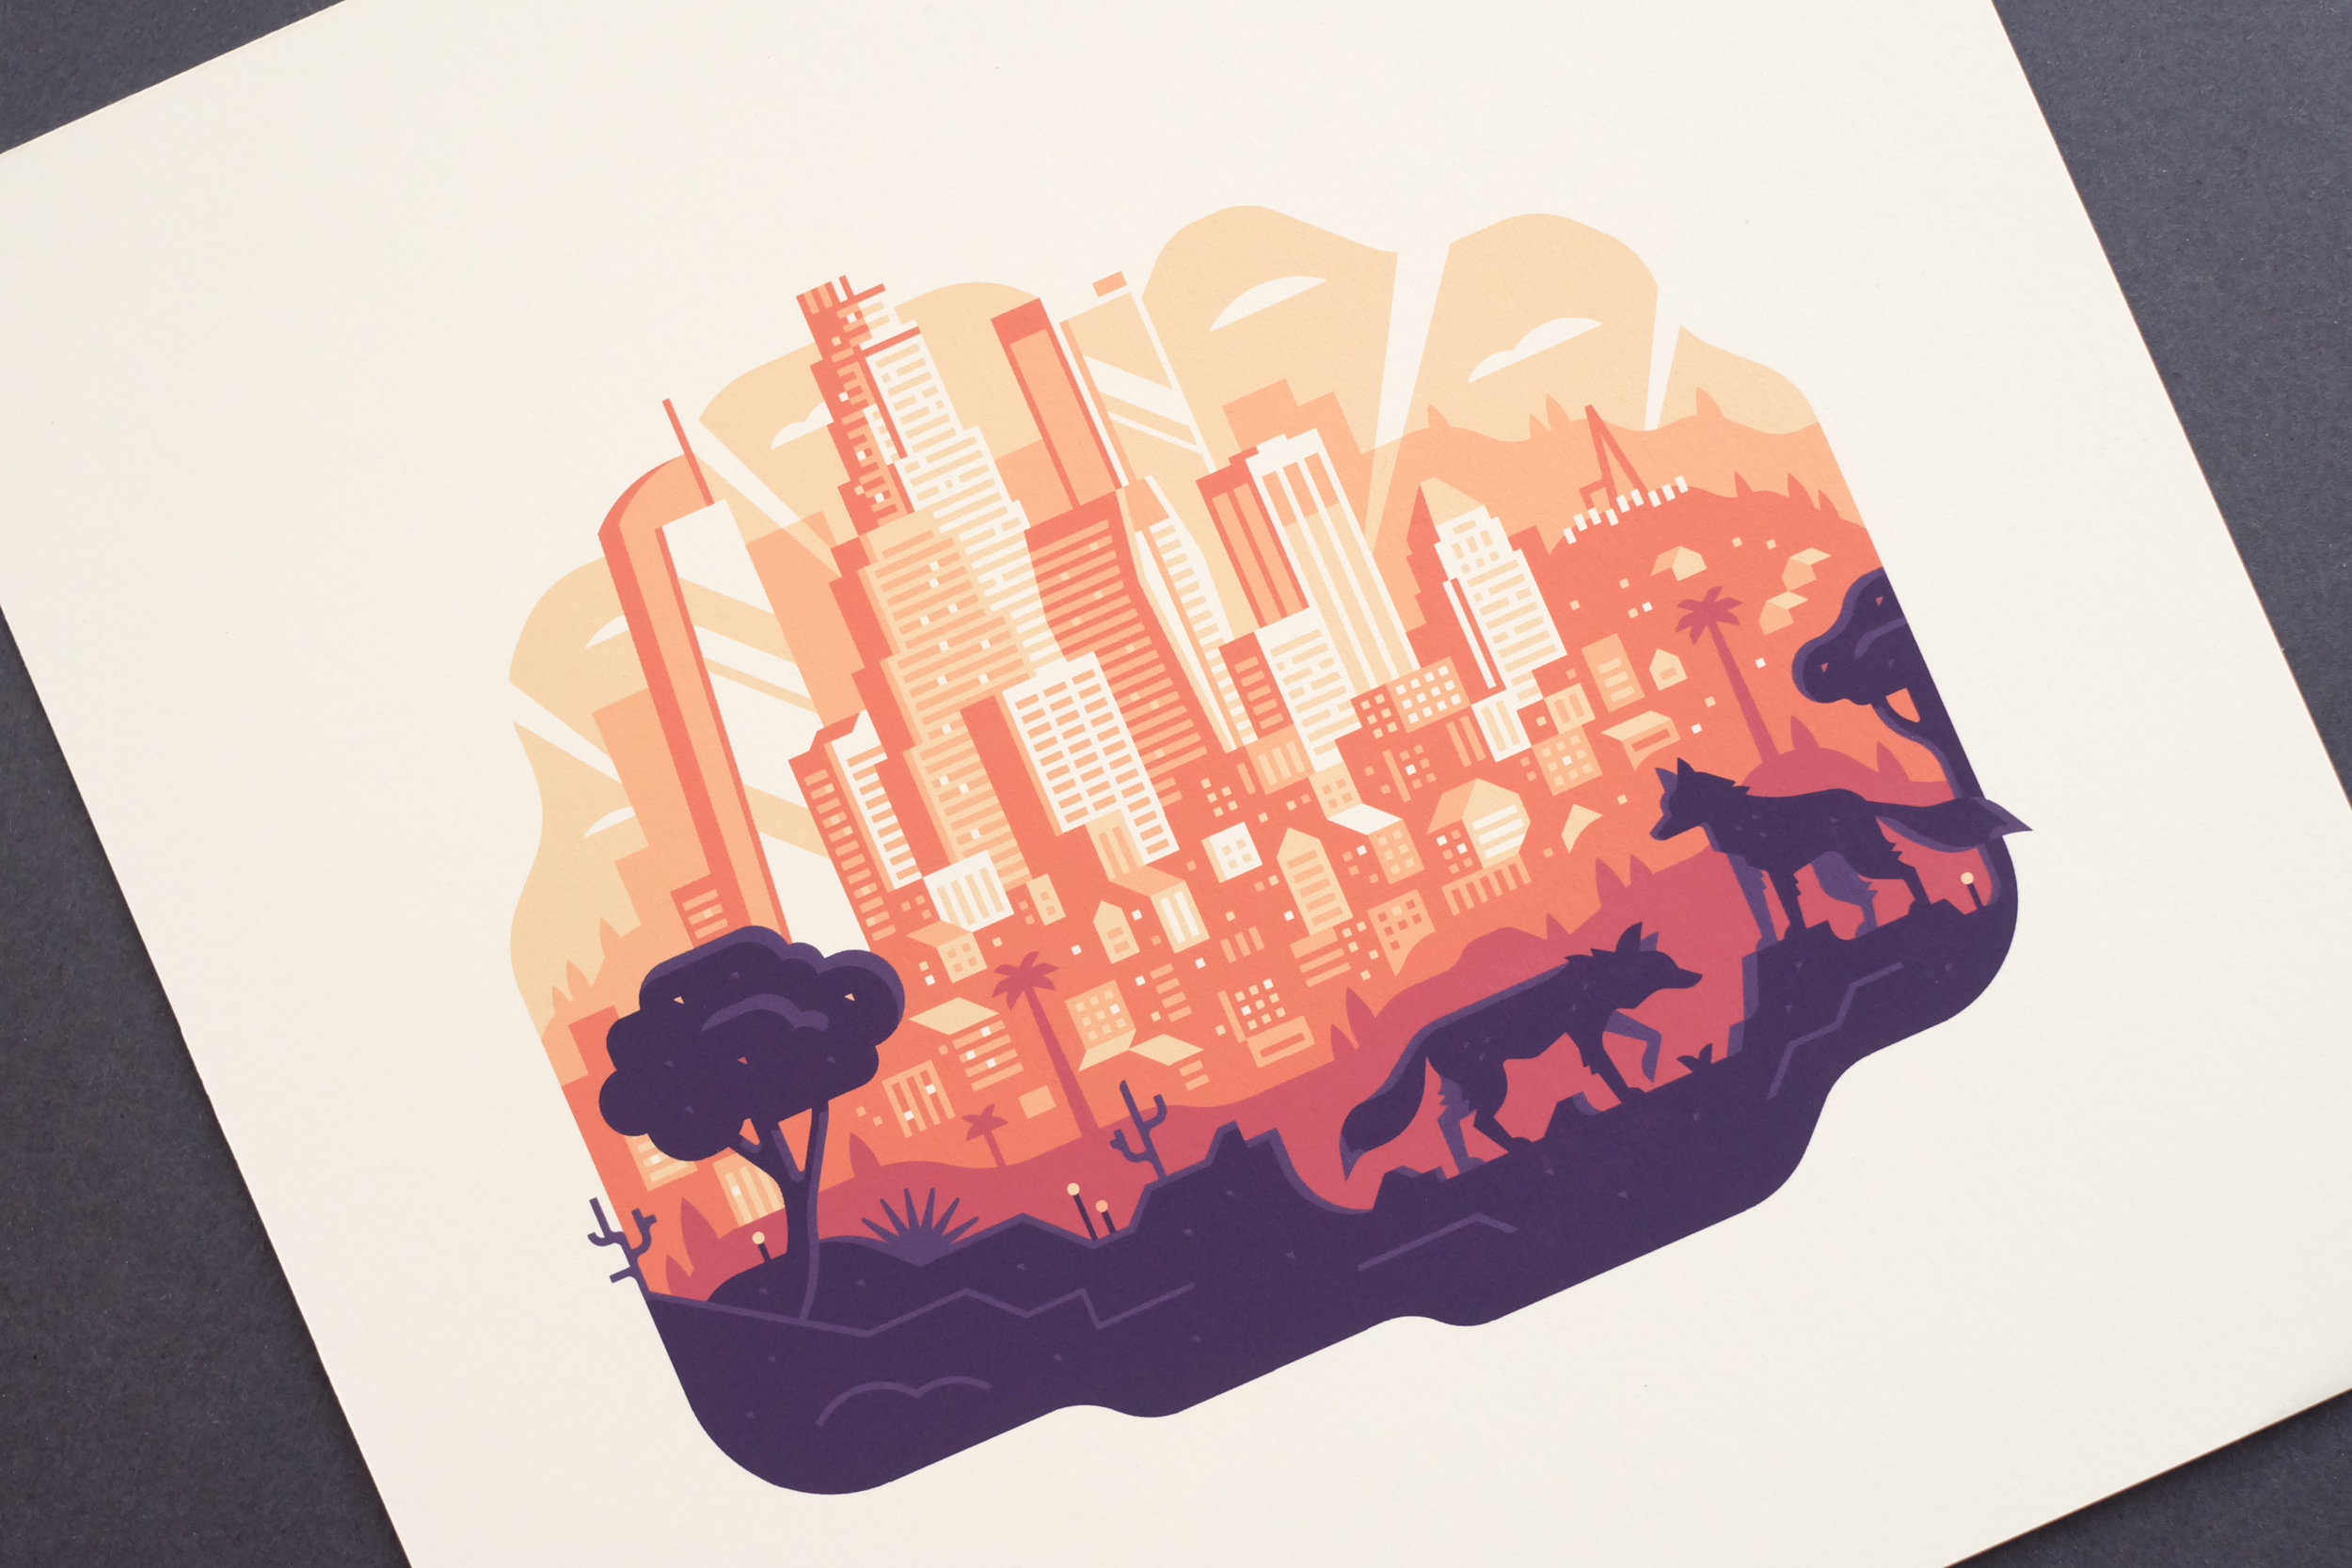 Gallery 1988 Los Angeles print by Canopy Design and Illustration